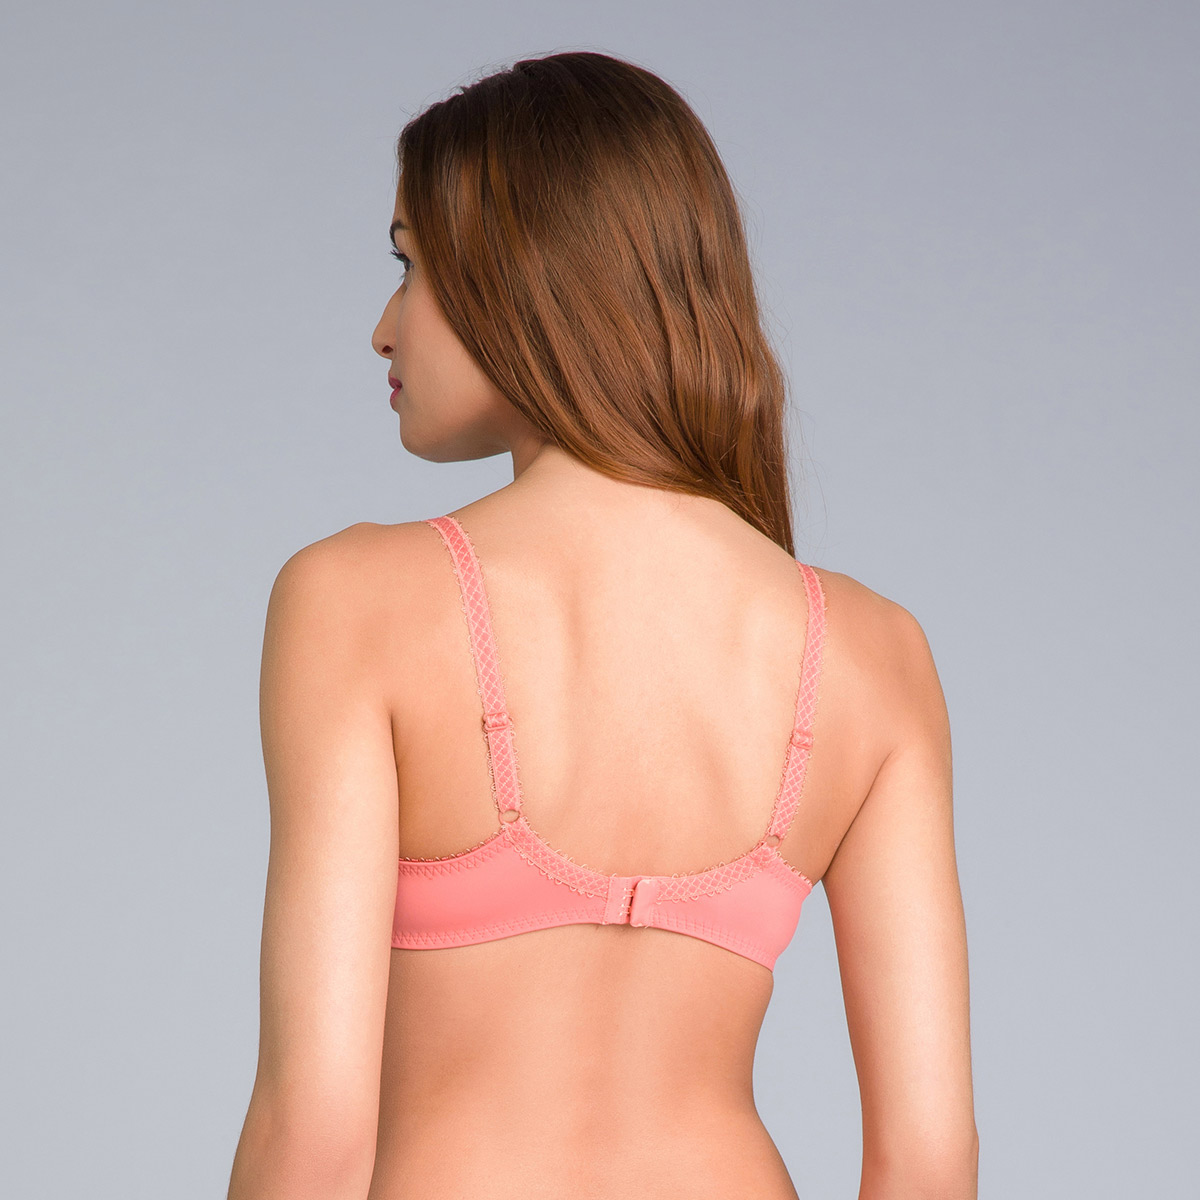 Full Cup Lace Bra in Cinnamon Orange - Flower Elegance - PLAYTEX